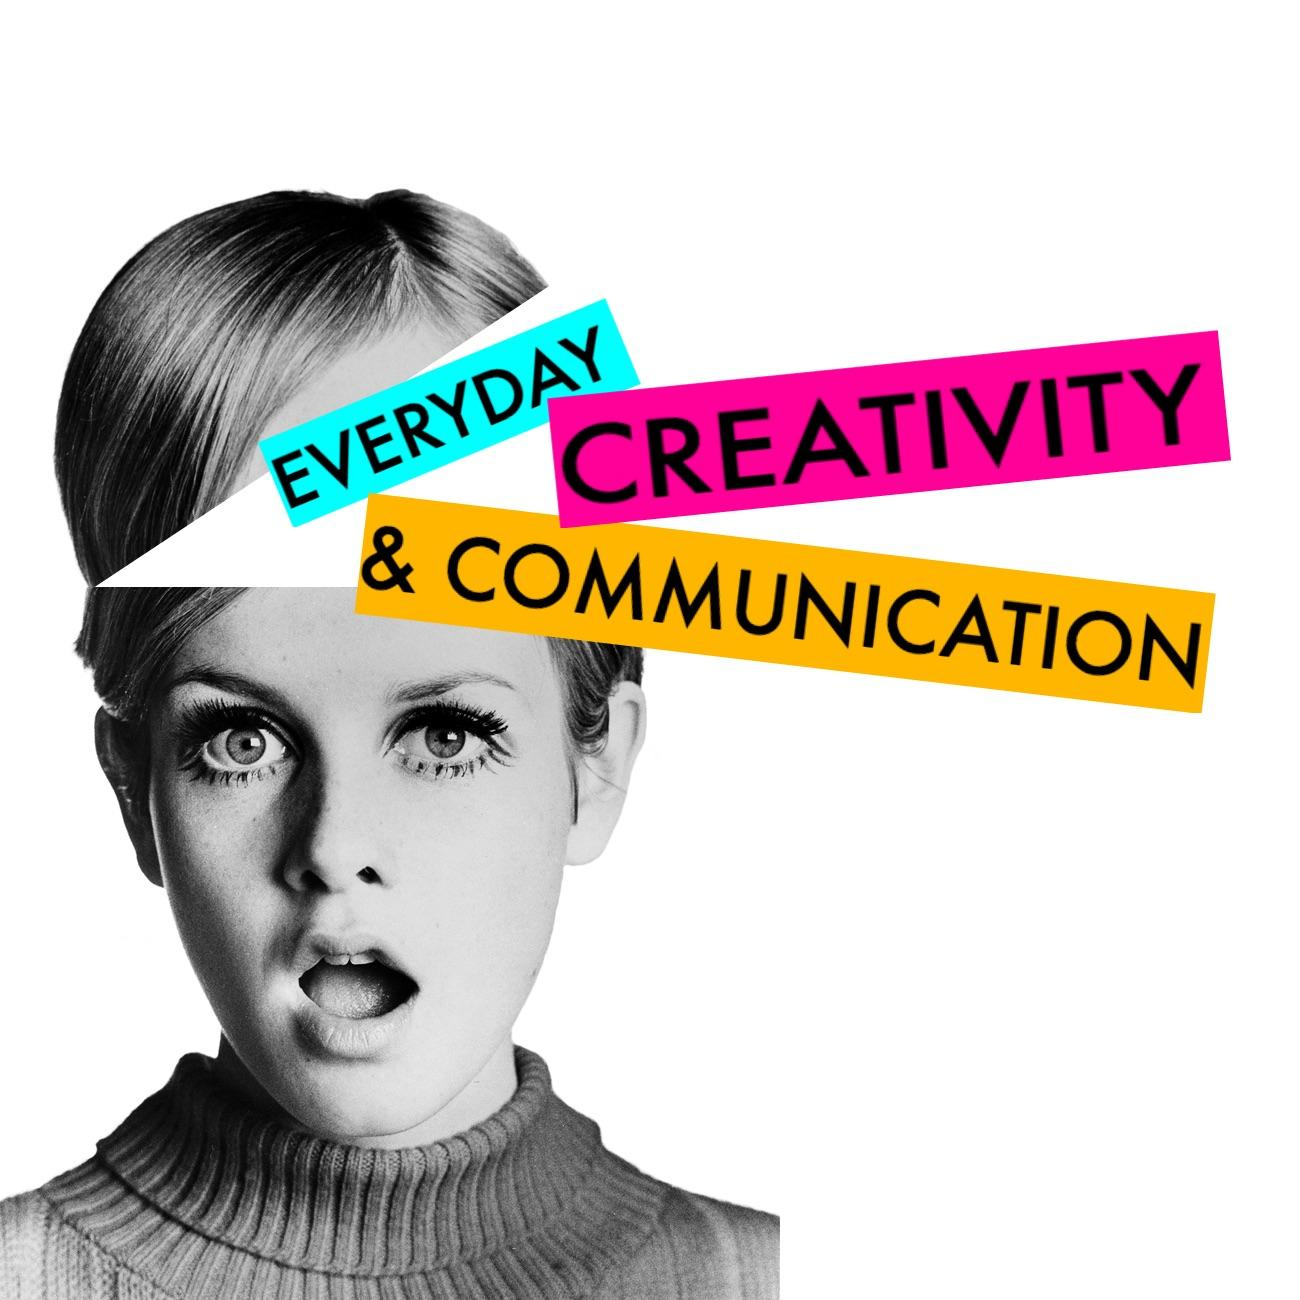 Everyday creativity in communication